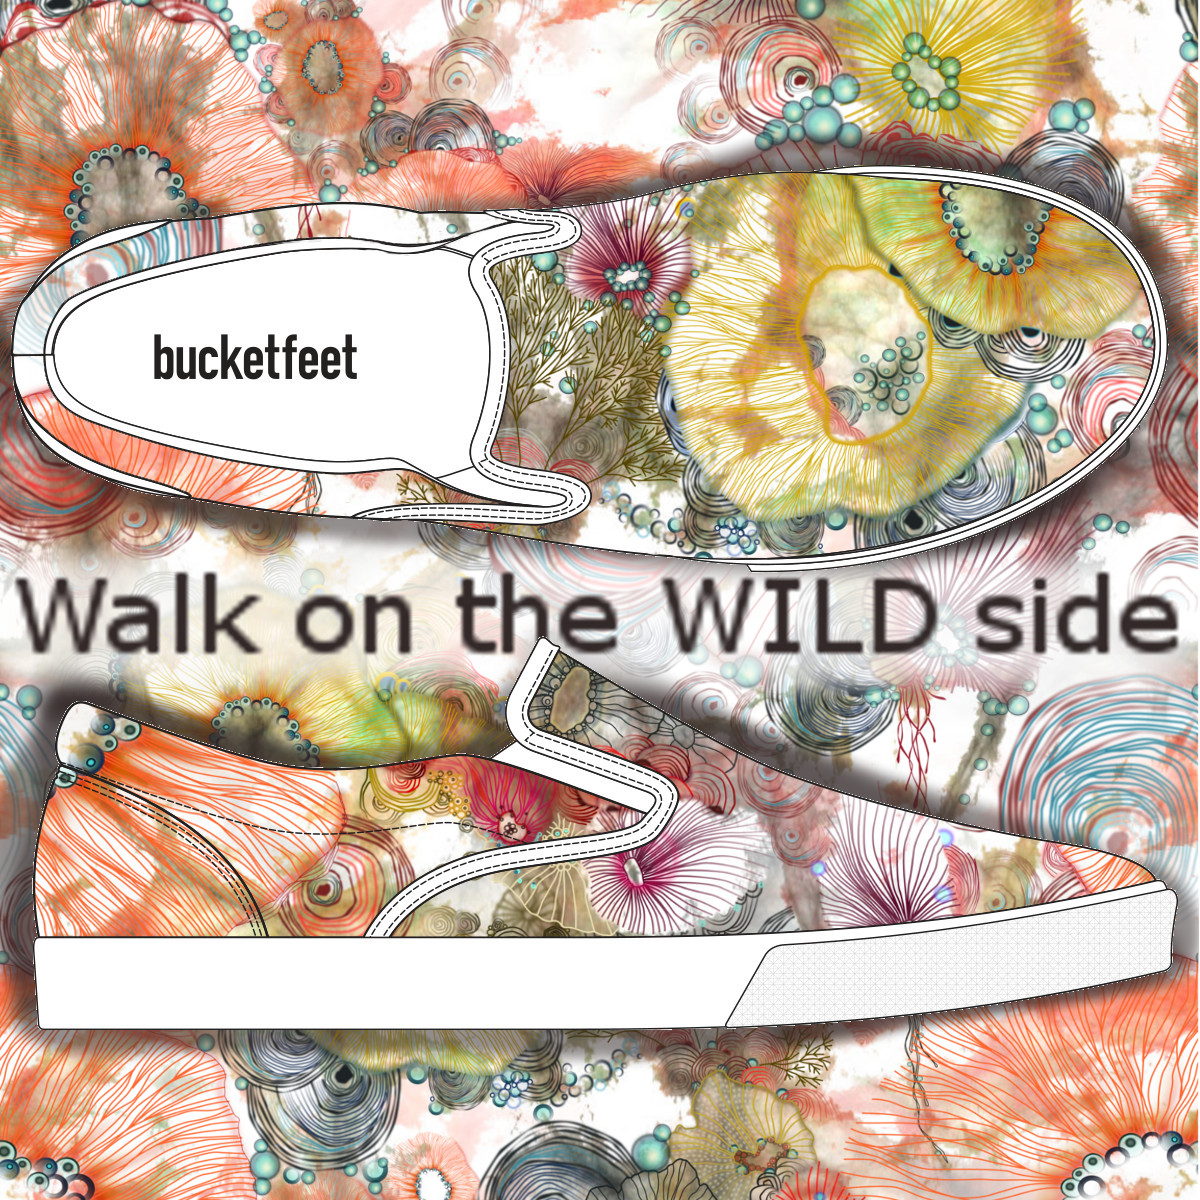 Walk on the wild side, a cool t-shirt design